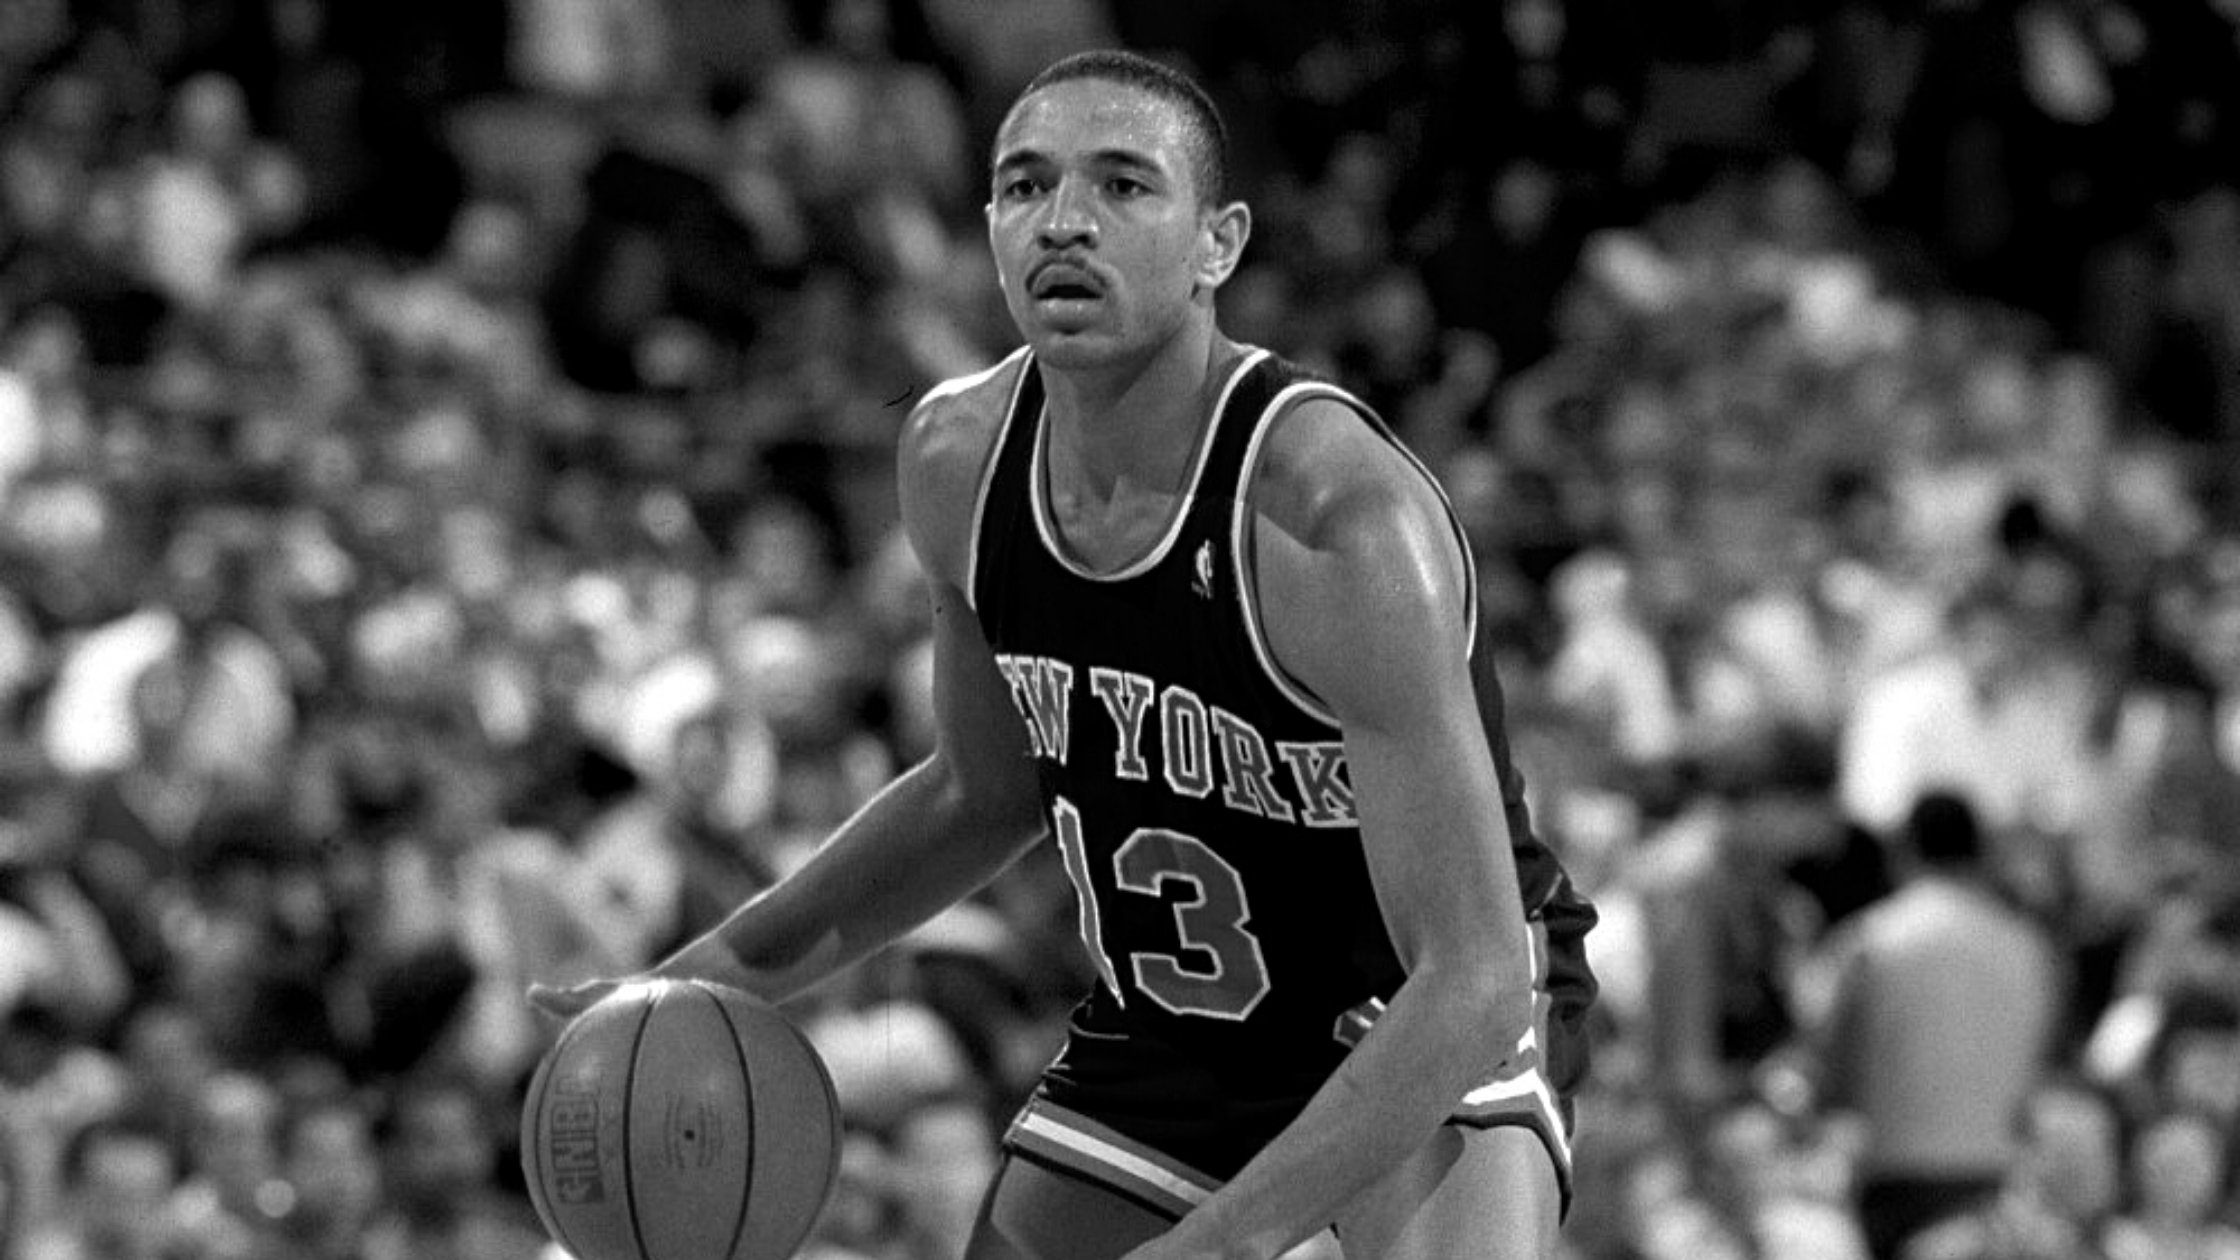 #46 – Mark Jackson, New York dans le sang